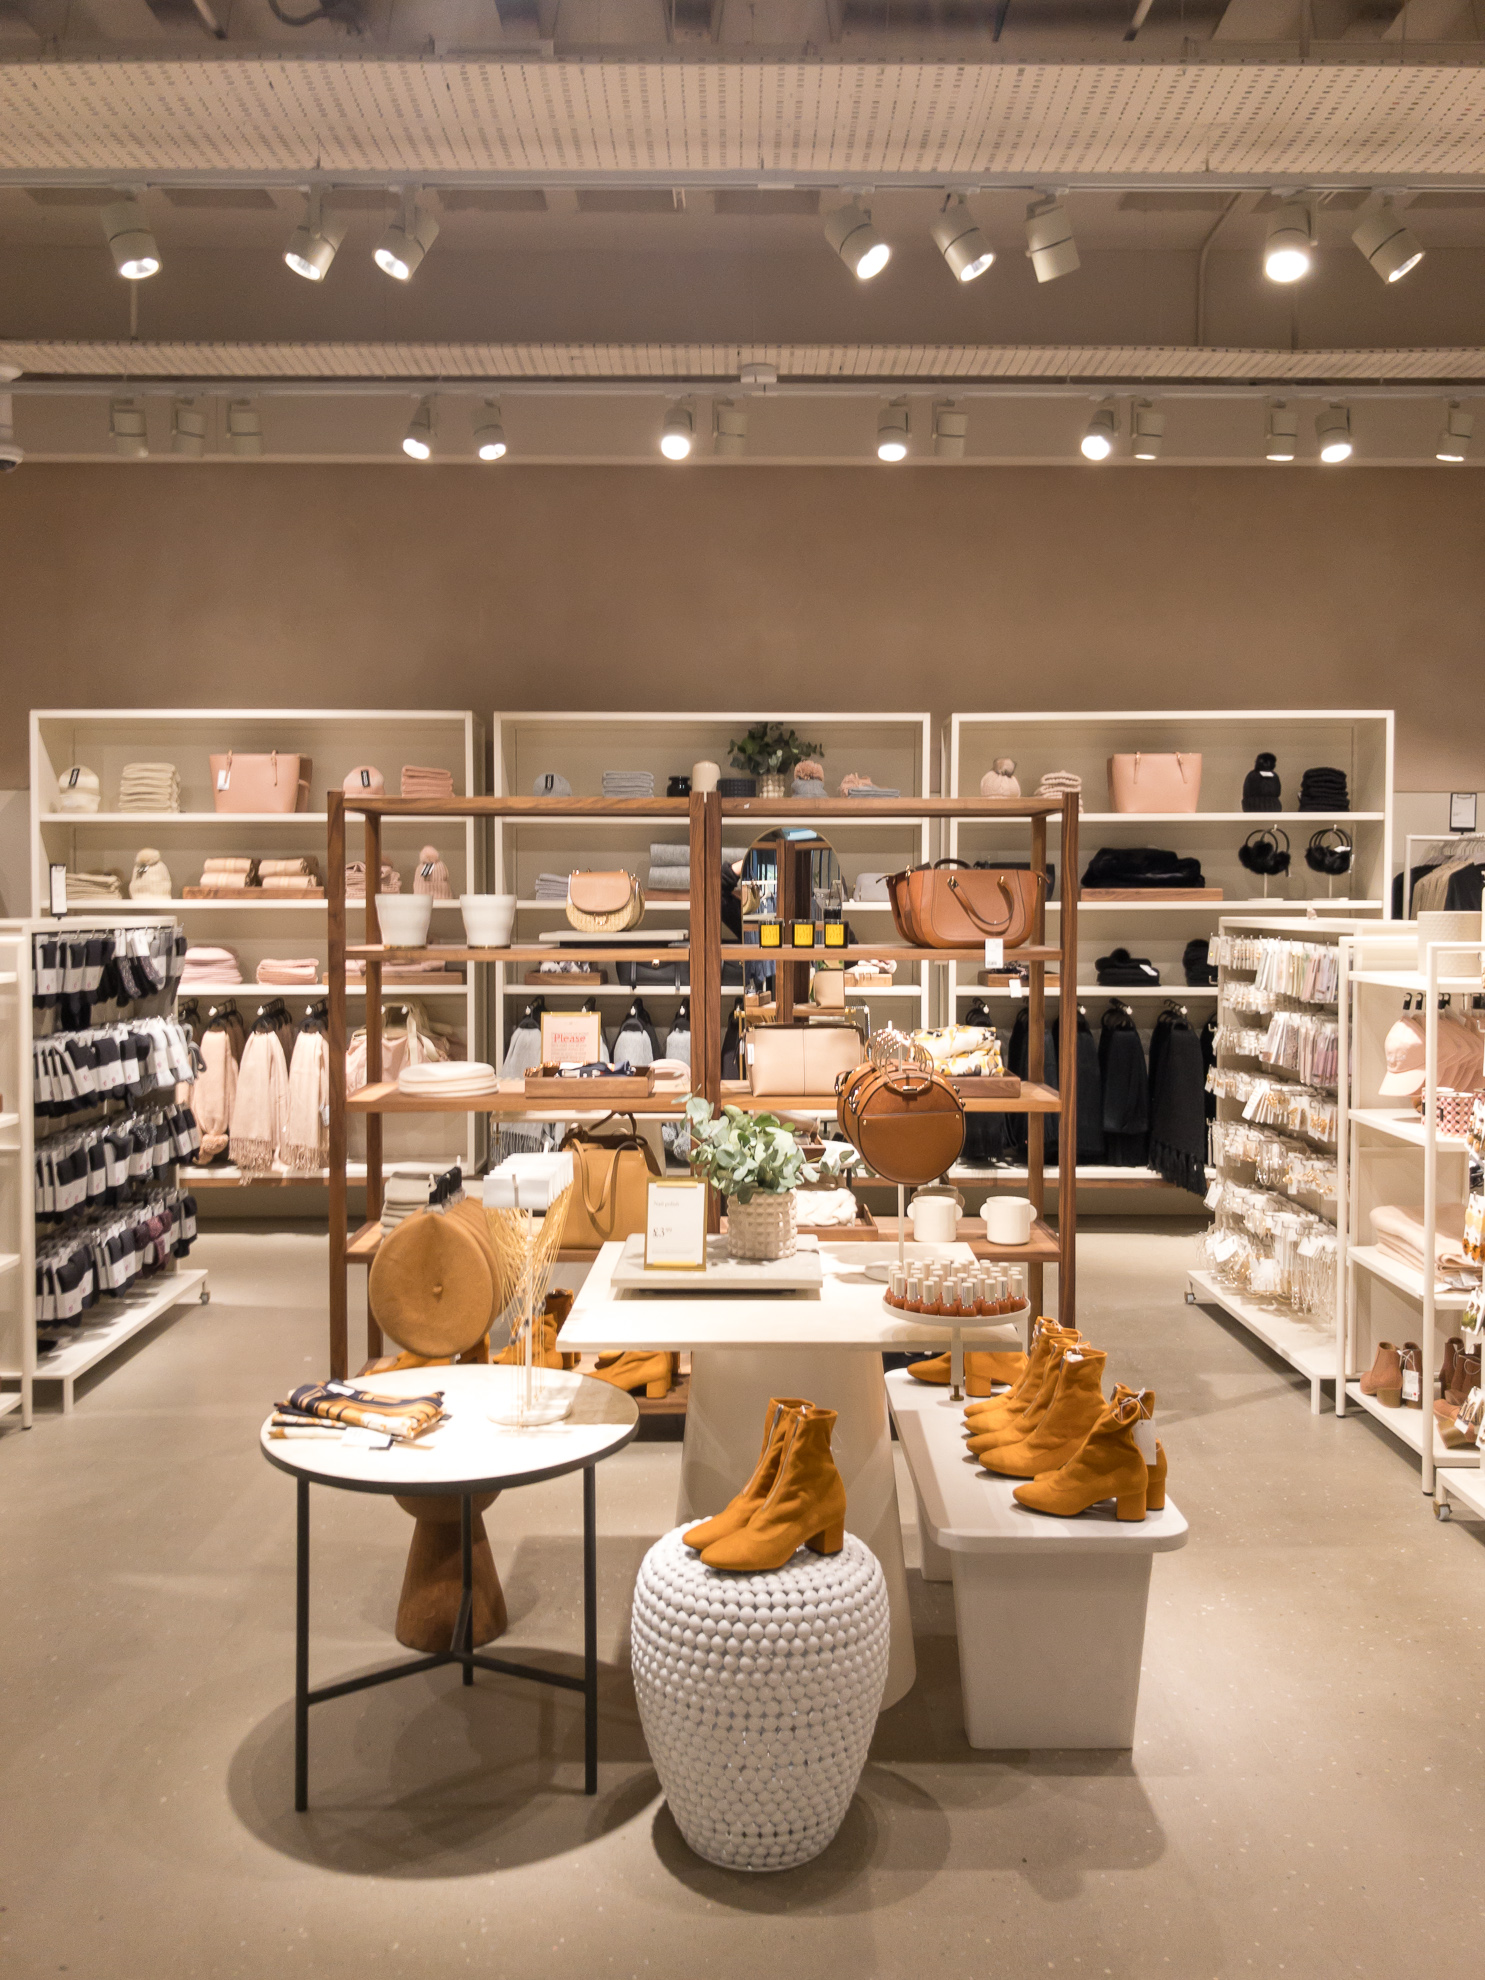 H&M Hammersmith Interior Product Display Design Visual Merchandising.jpg